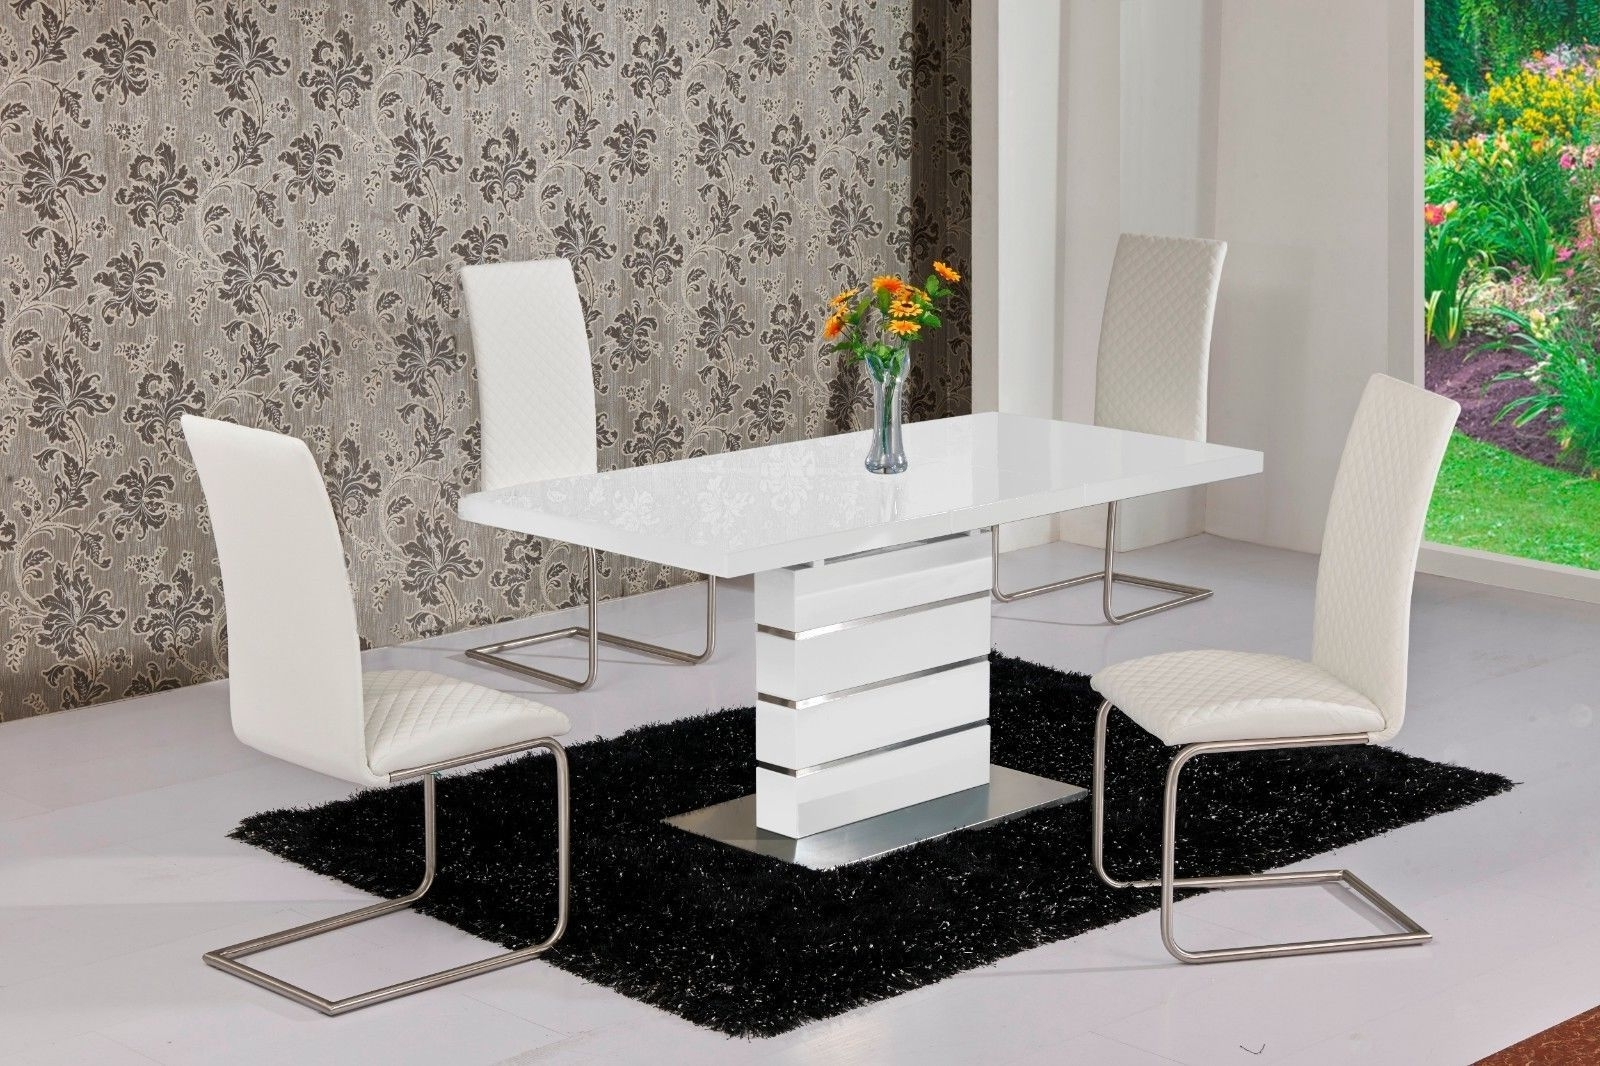 Mace High Gloss Extending 120 160 Dining Table & Chair Set – White For Trendy White Gloss Extendable Dining Tables (View 5 of 25)